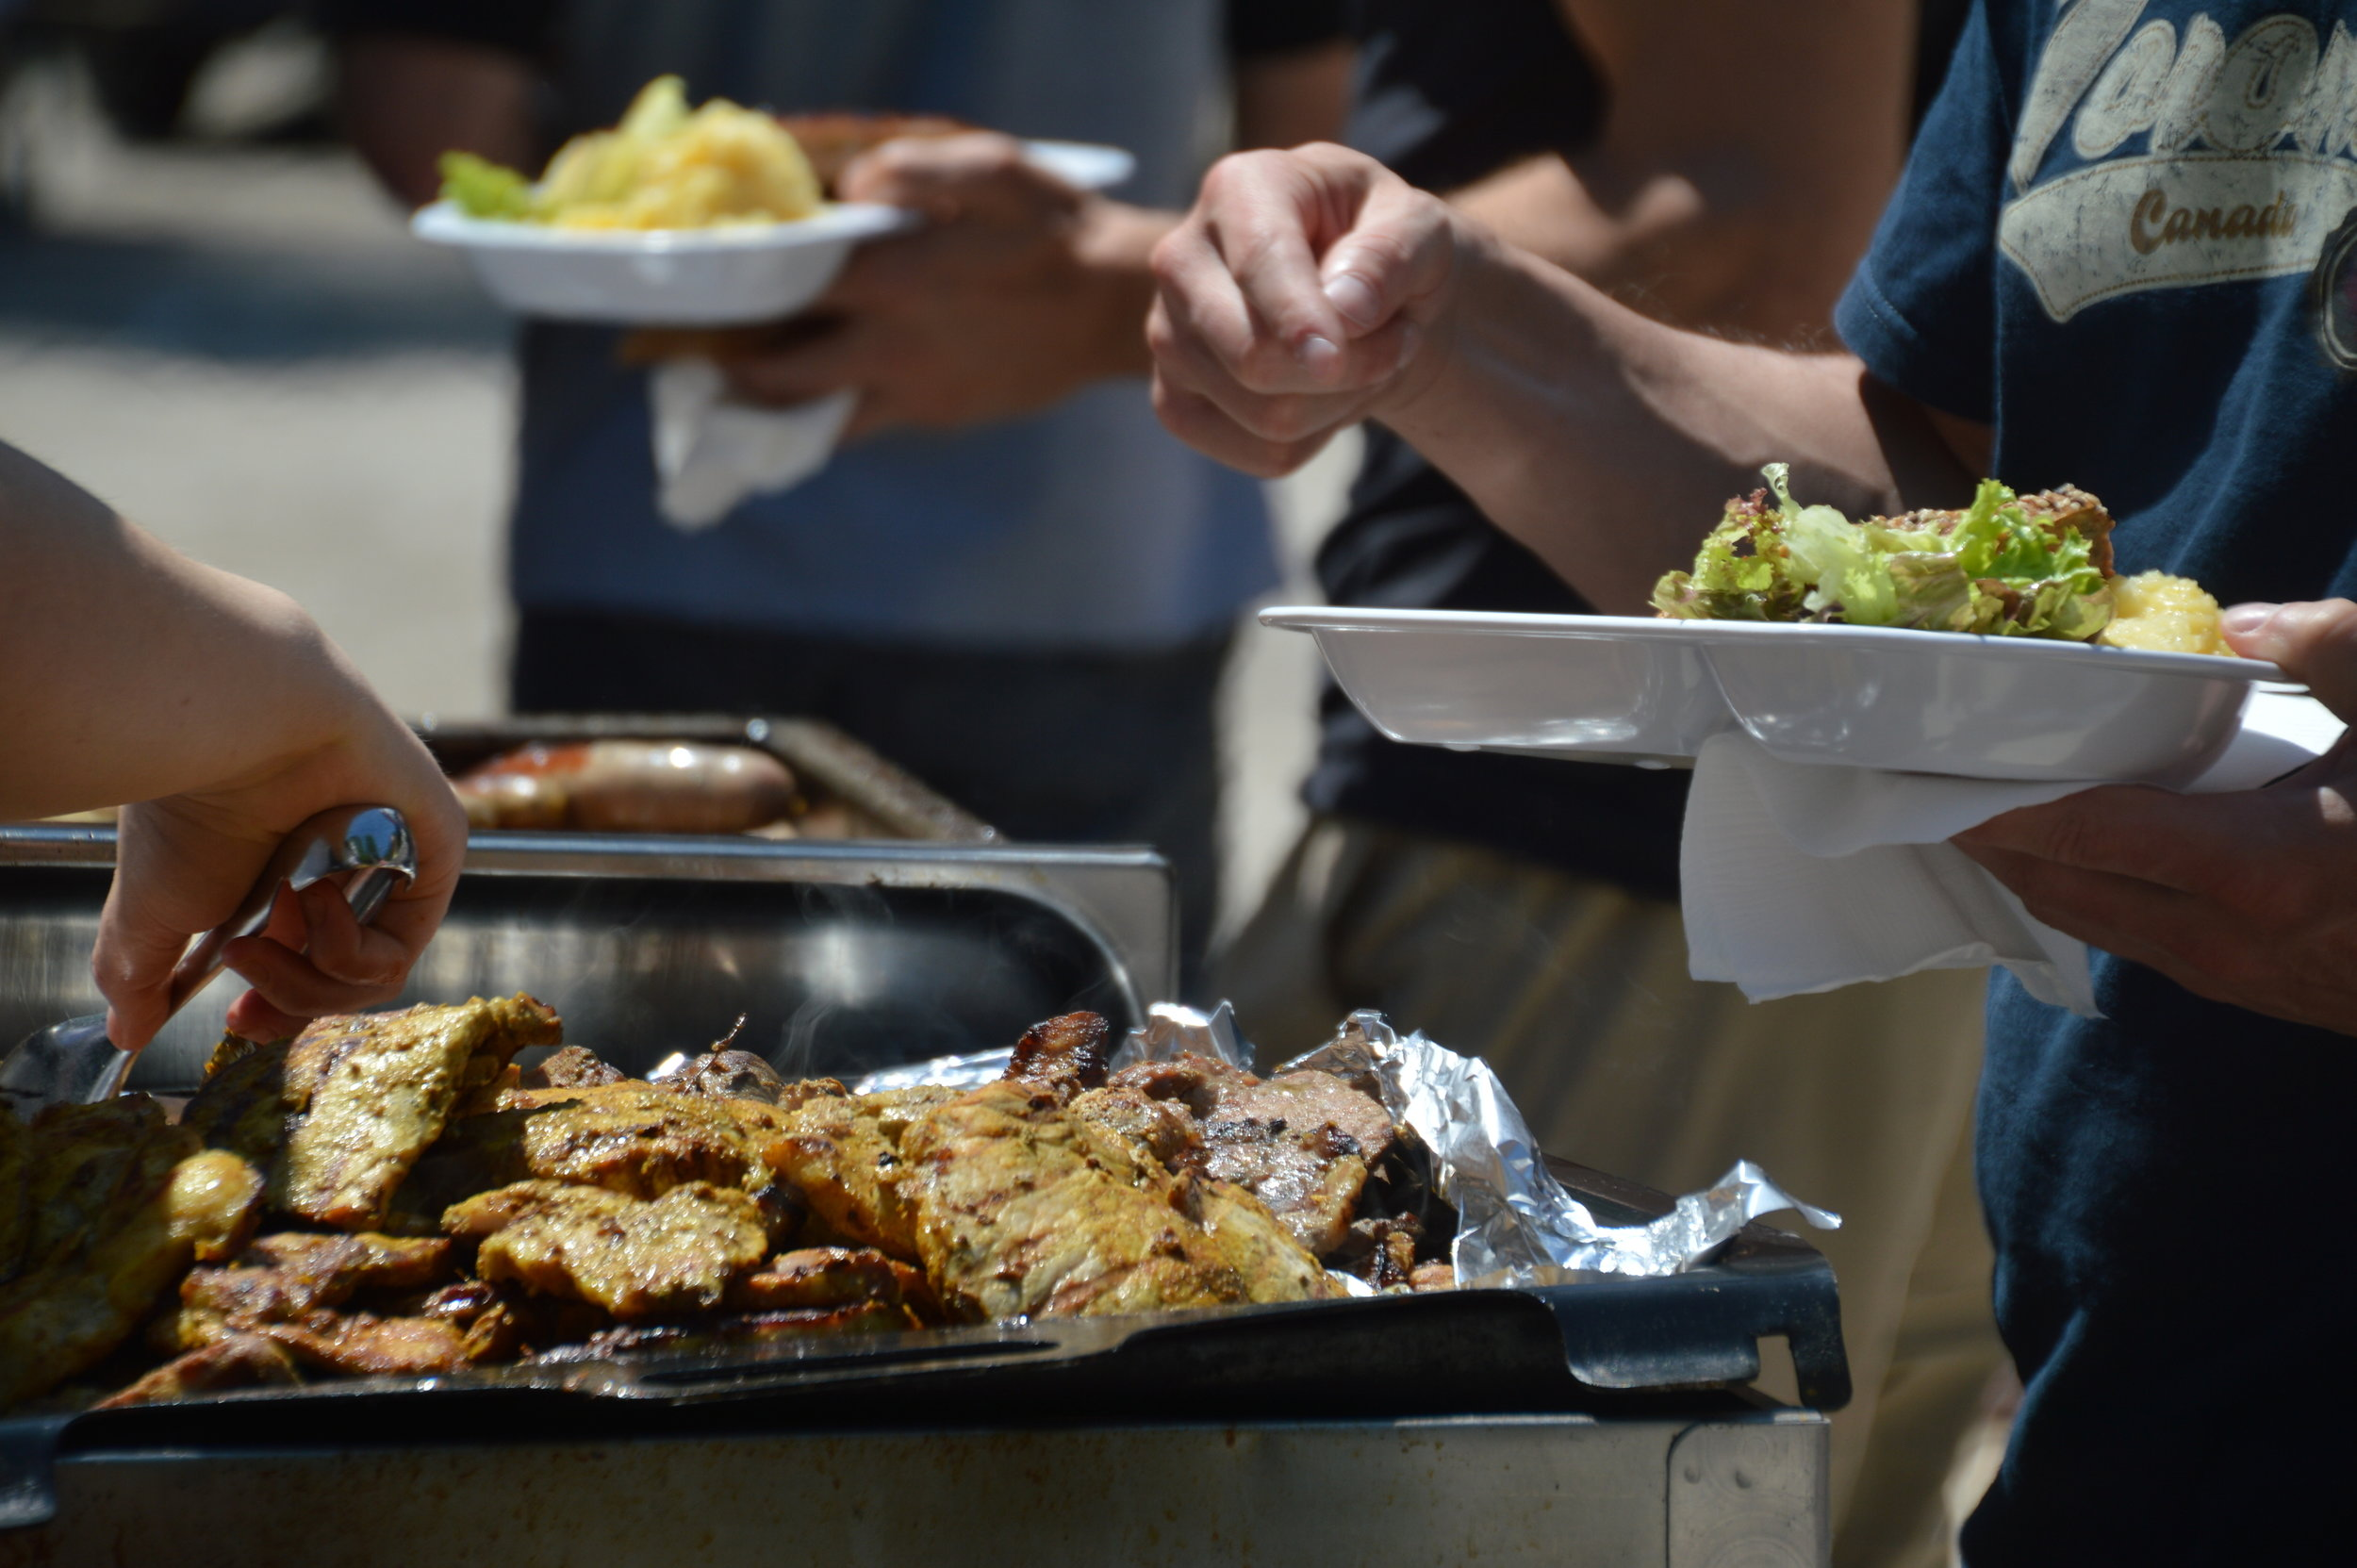 Supper on the Square - 2nd, 3rd & 4th Mondays @ 5 PMOn Monday nights we host a meal for the downtown community in our fellowship hall. Contact us if you are interested in helping to prepare or serve a meal.